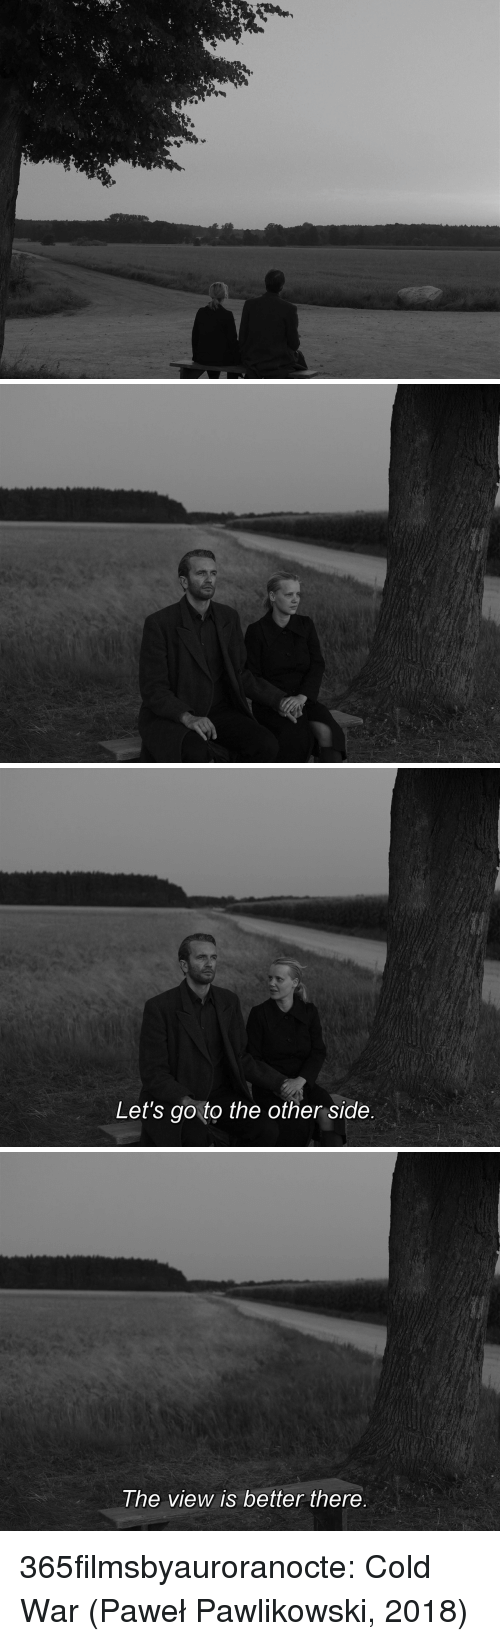 Cold War: Let's go to the other side   he view is better there 365filmsbyauroranocte:    Cold War (Paweł Pawlikowski, 2018)